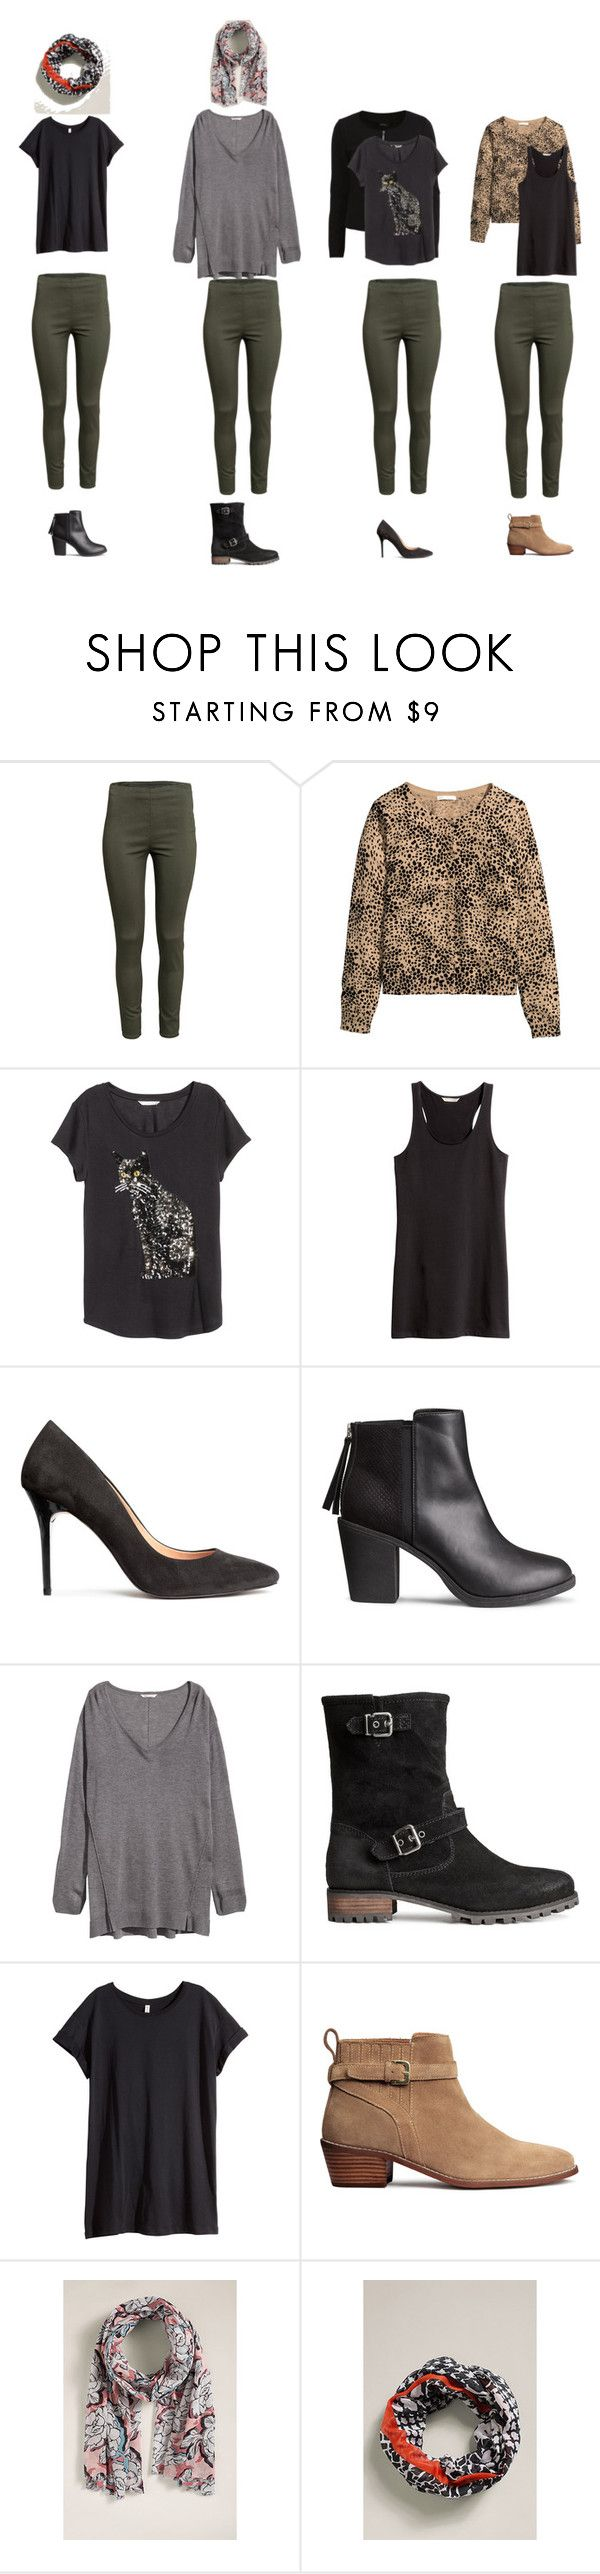 """""""4 set kaki trousers"""" by lone-haure-norrevang on Polyvore featuring H&M, women's clothing, women, female, woman, misses and juniors"""